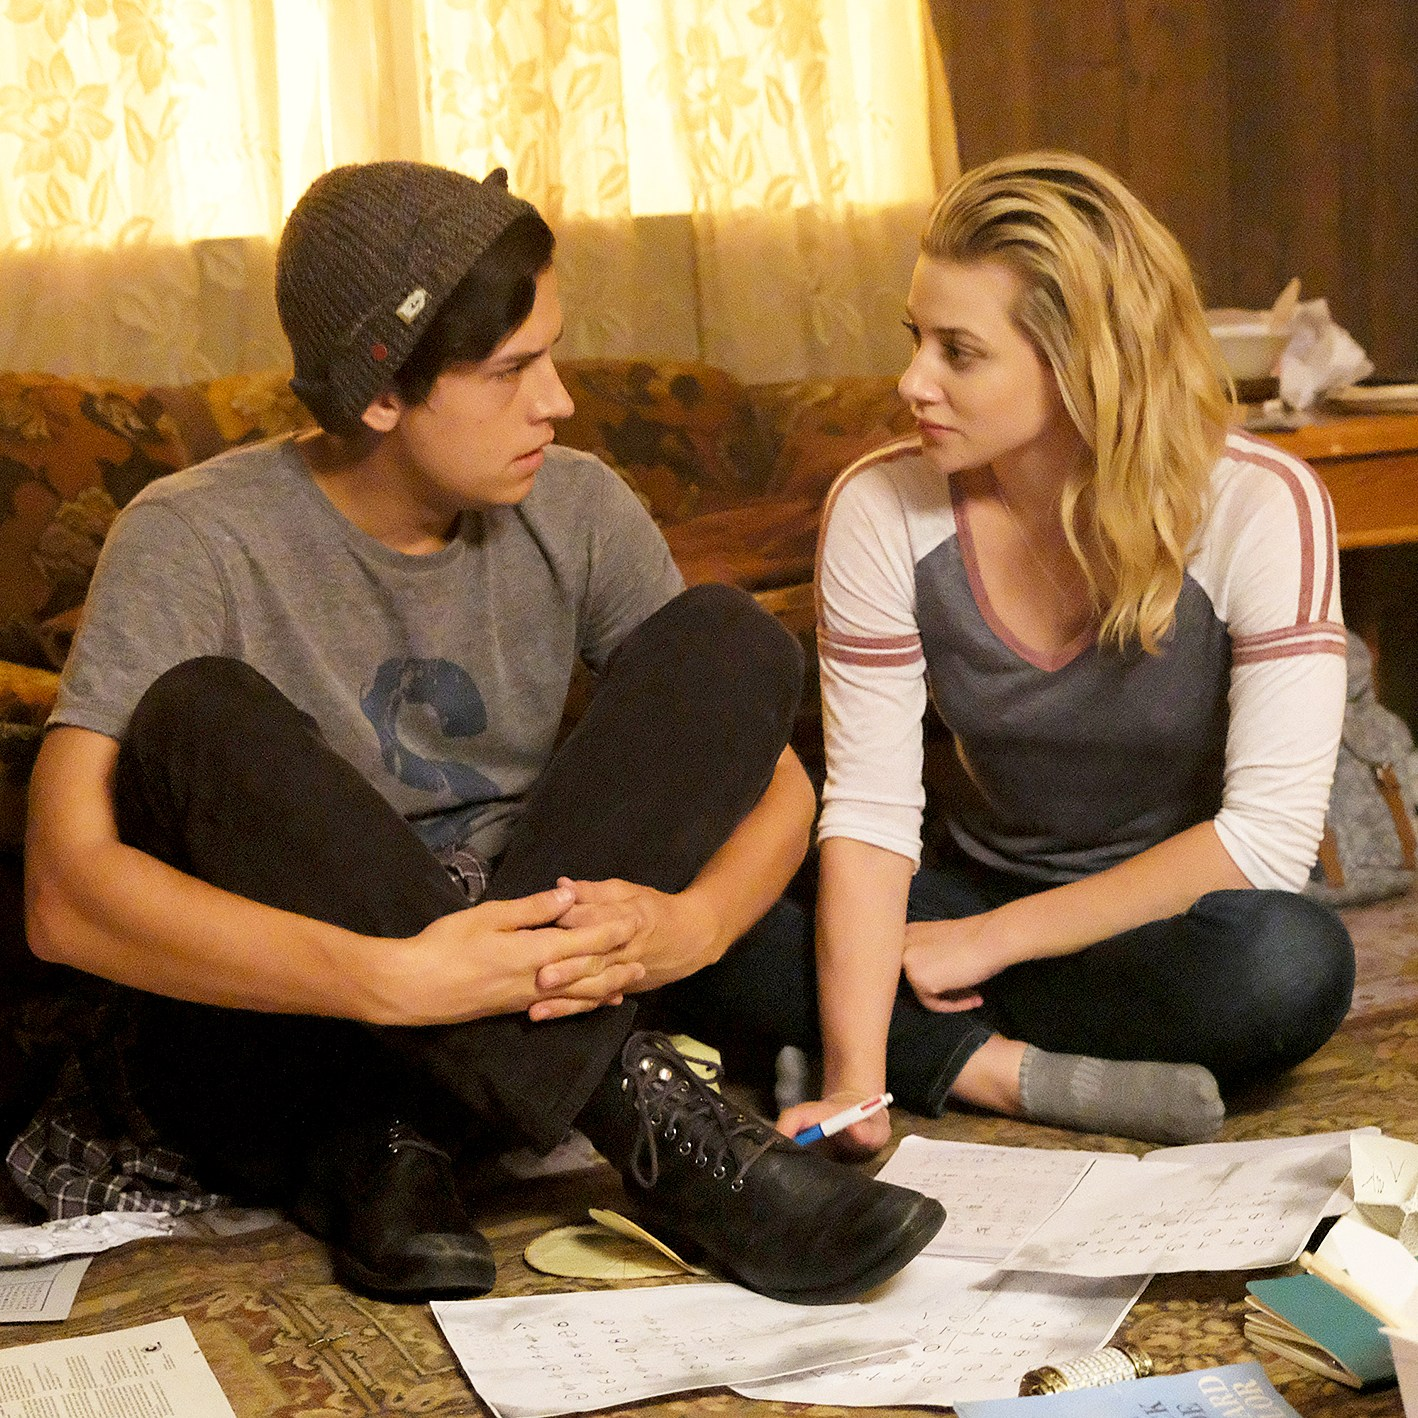 Cole Sprouse as Jughead Jones and Lili Reinhart as Betty Cooper on 'Riverdale'